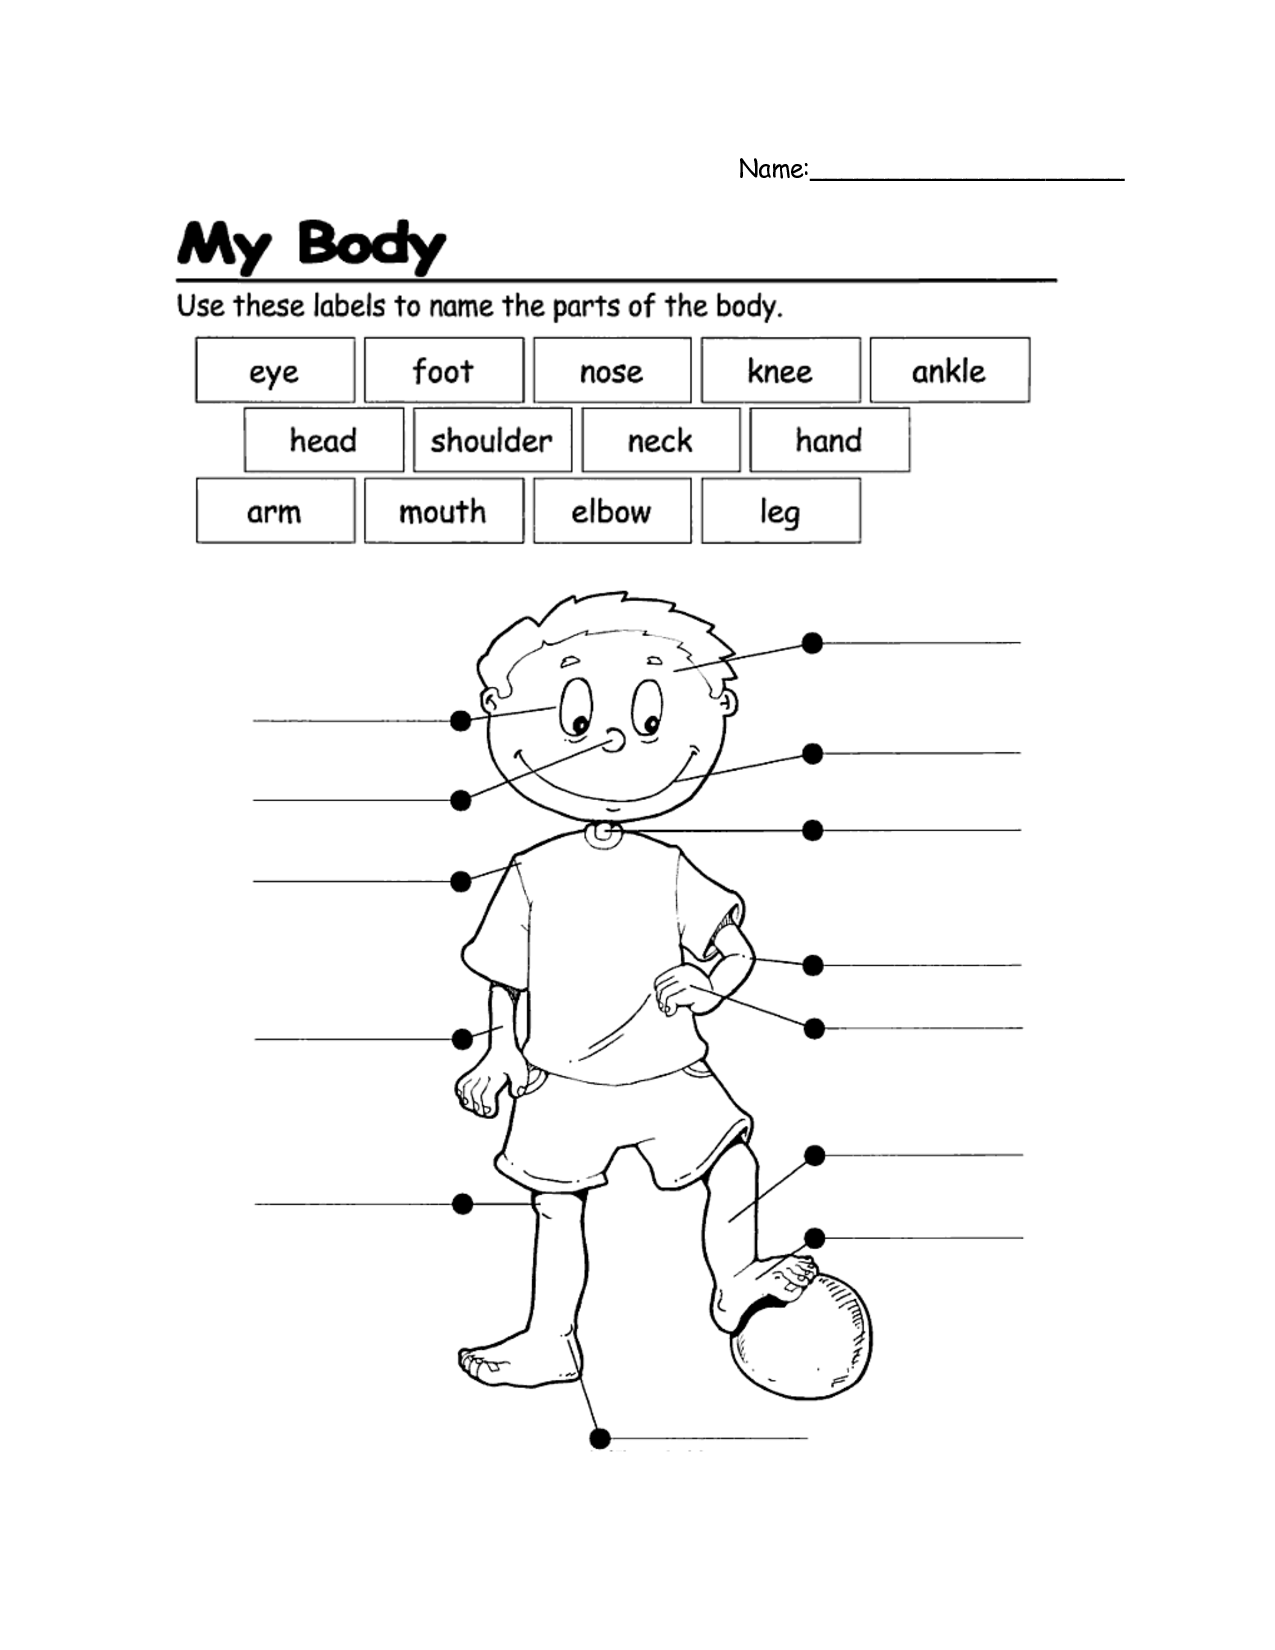 worksheet My Body Worksheets For Grade 1 name parts of the body first grade yahoo image search results grade